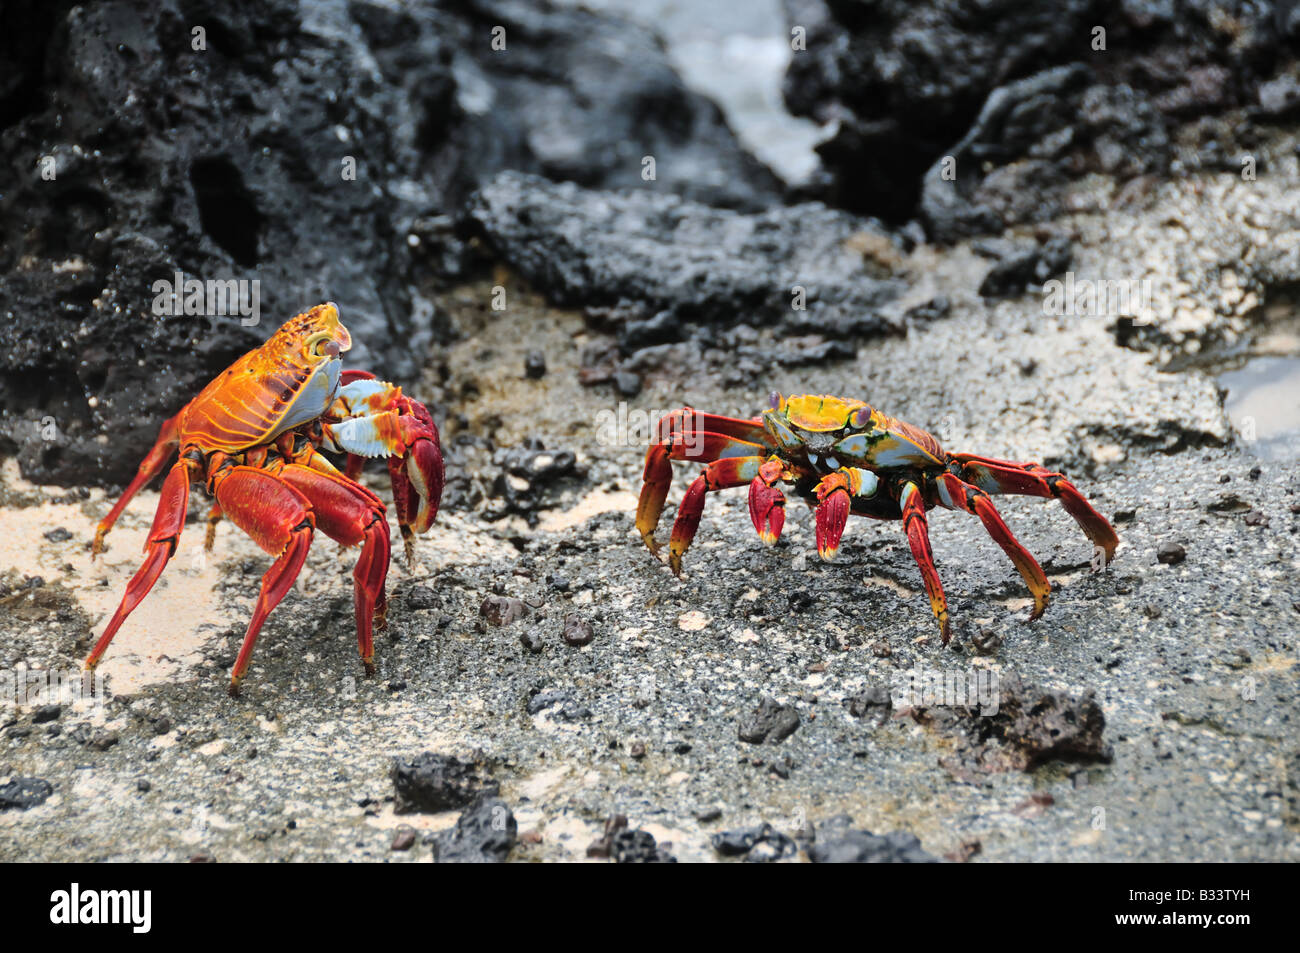 Two red rock crabs, also known as a Sally Lightfoot or Grapsus grapsus crabs, battle for territory. - Stock Image